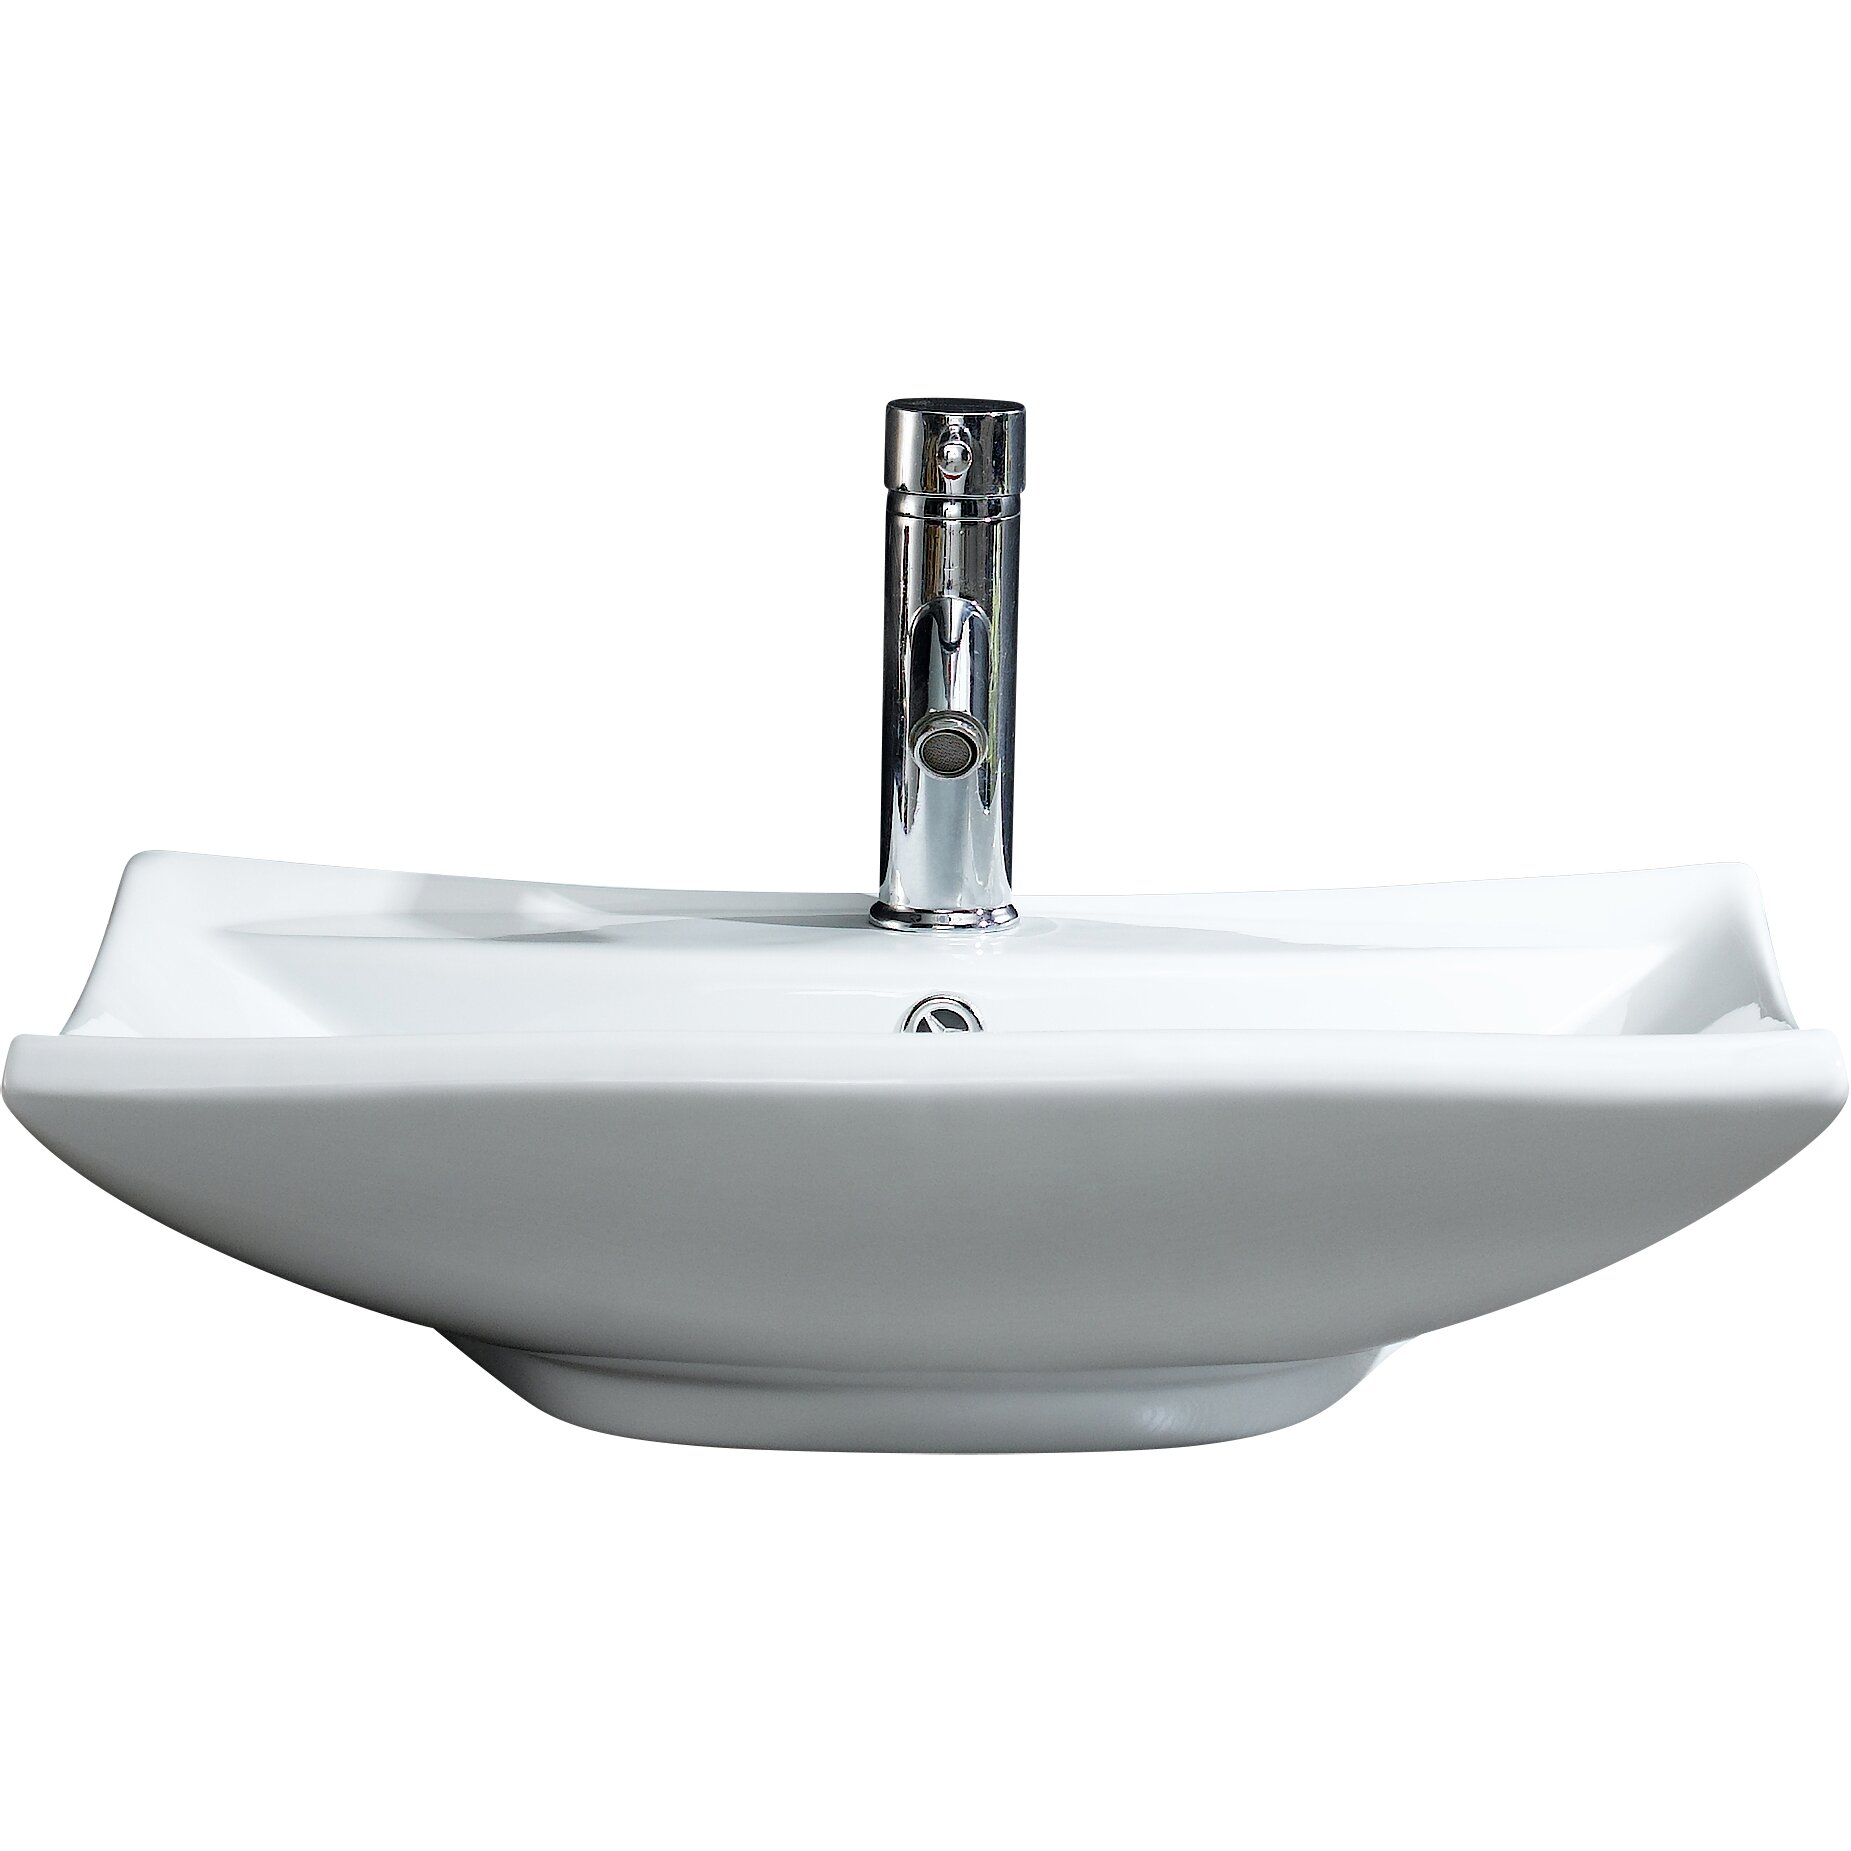 Modern Vessel Sinks : Fine Fixtures Modern Vitreous Square Vessel Sink Vessel Bathroom Sink ...